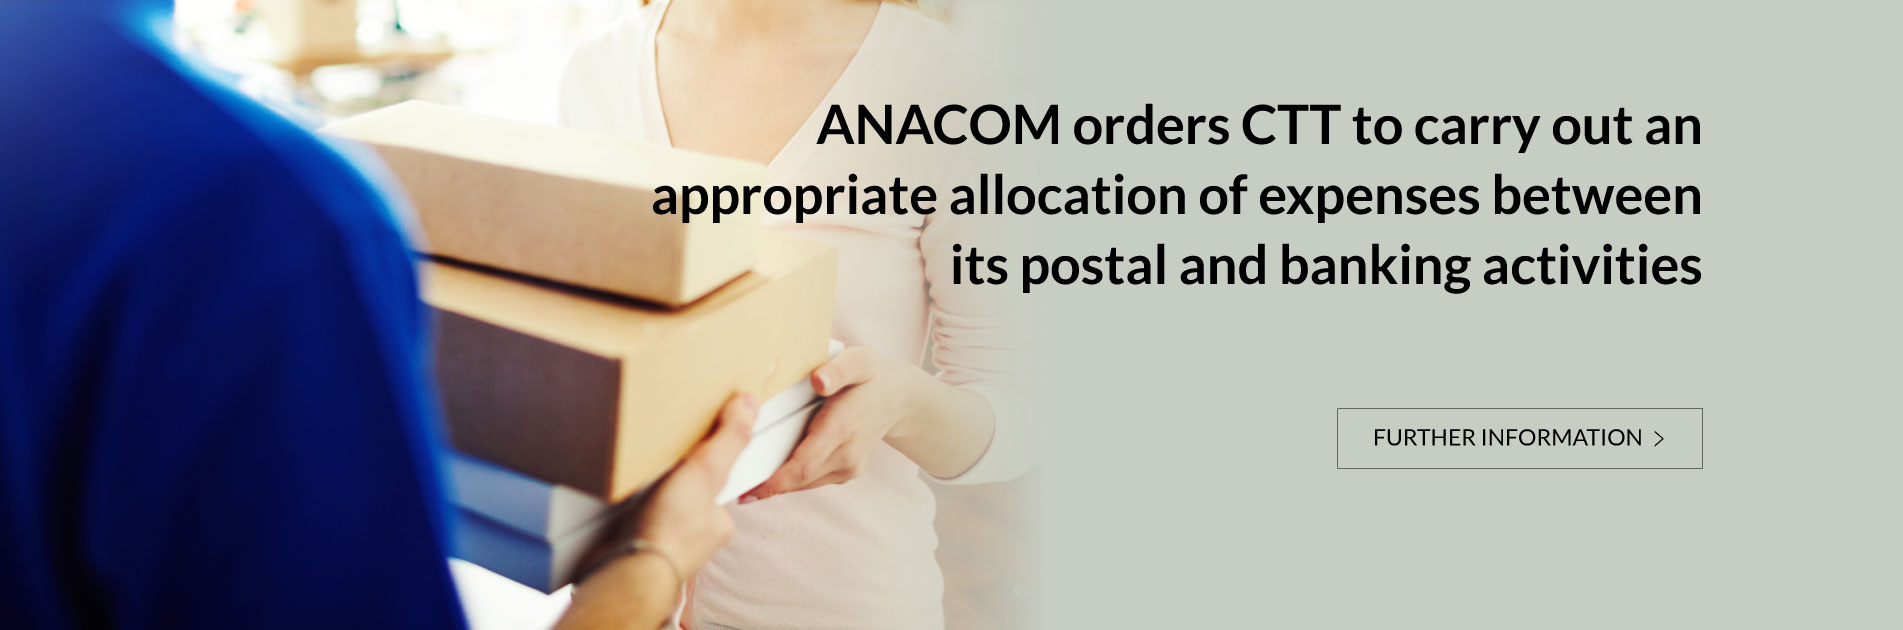 ANACOM orders CTT to carry out an appropriate allocation of expenses between its postal and banking activities